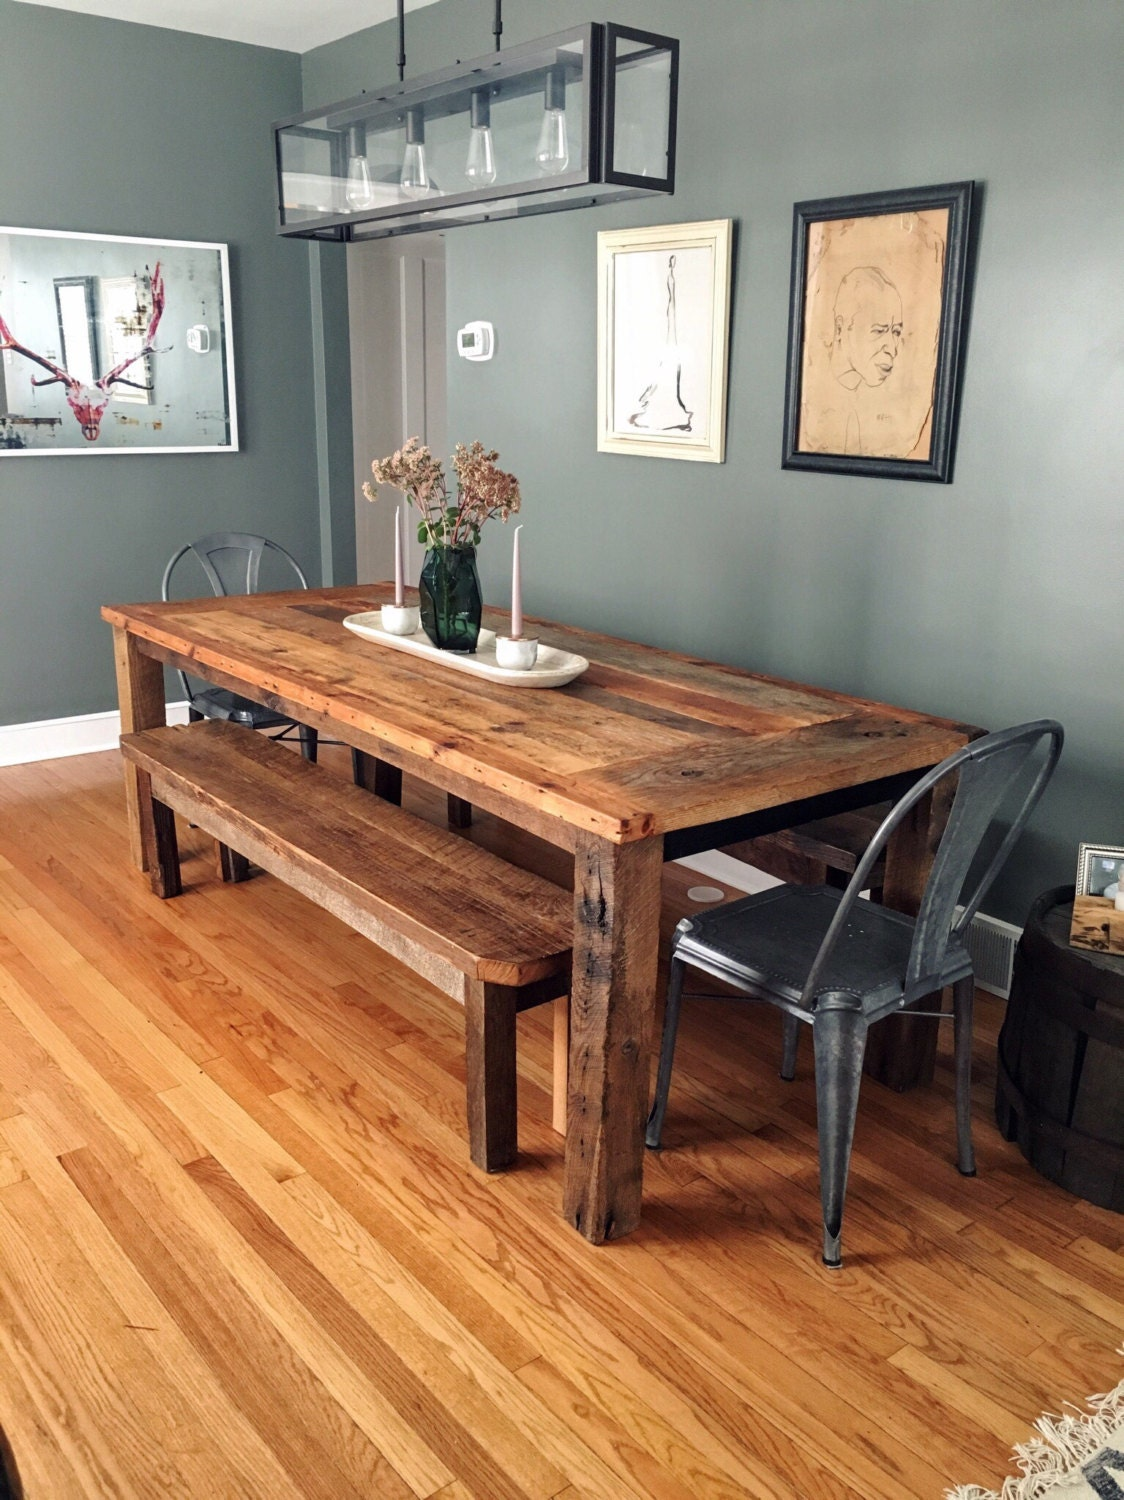 Reclaimed Wood Farmhouse Dining Table Textured Finish